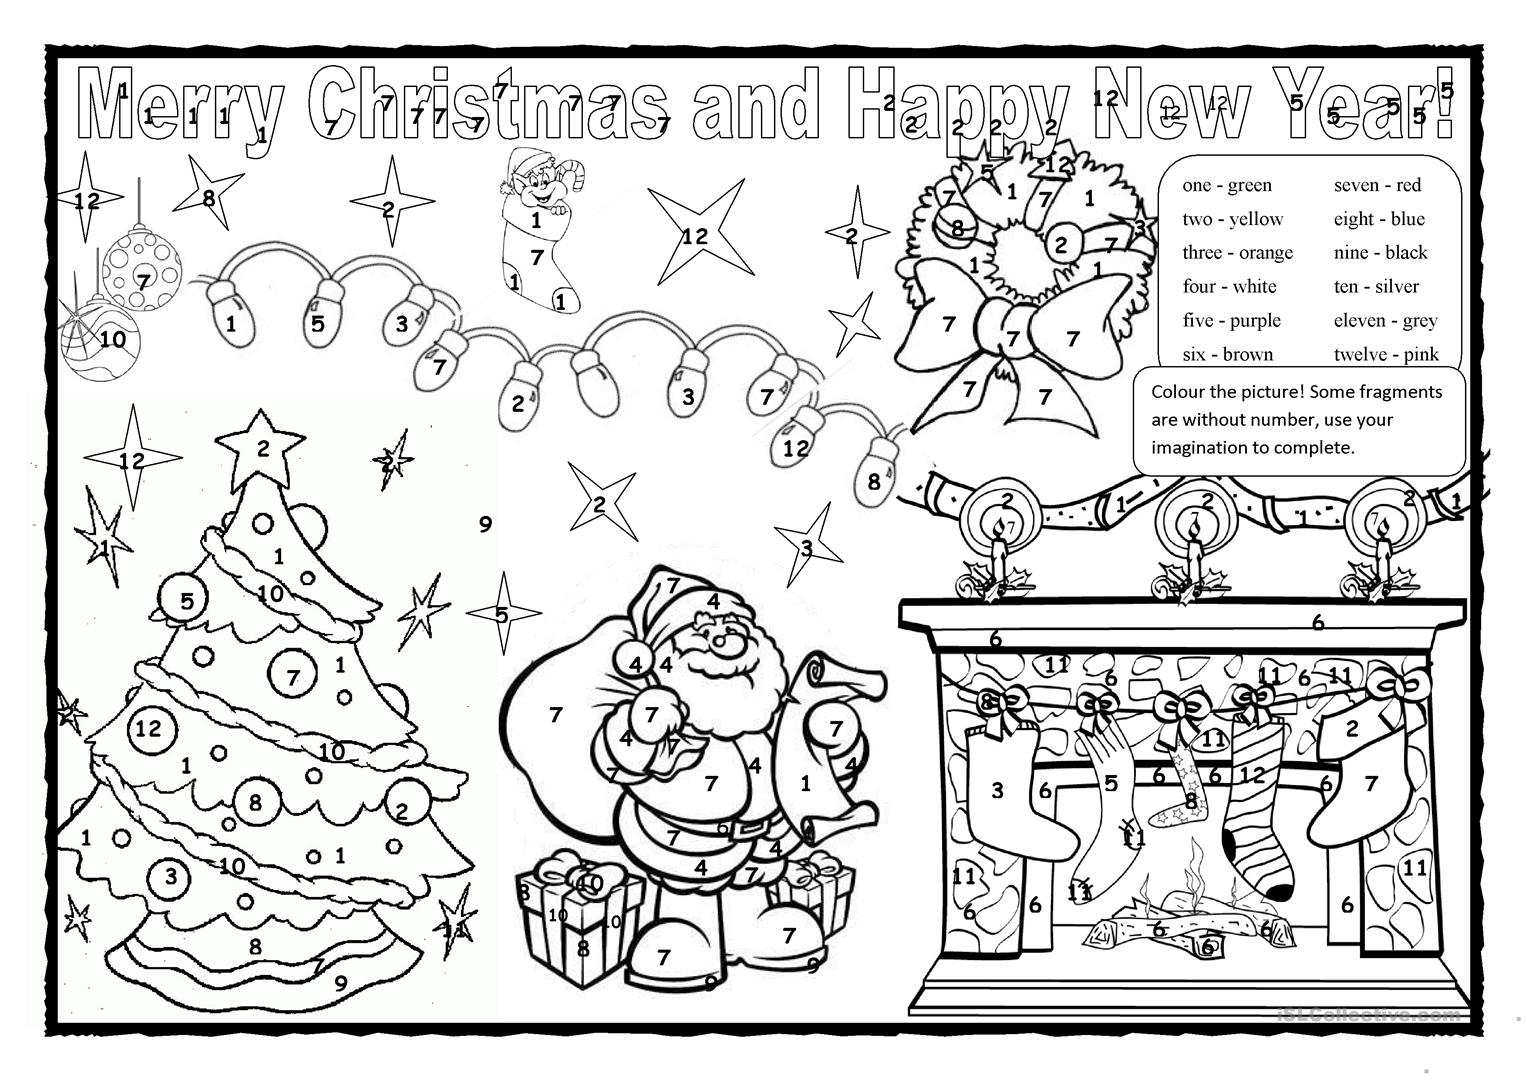 Christmas Coloring Esl With Colouring 2 Worksheet Free ESL Printable Worksheets